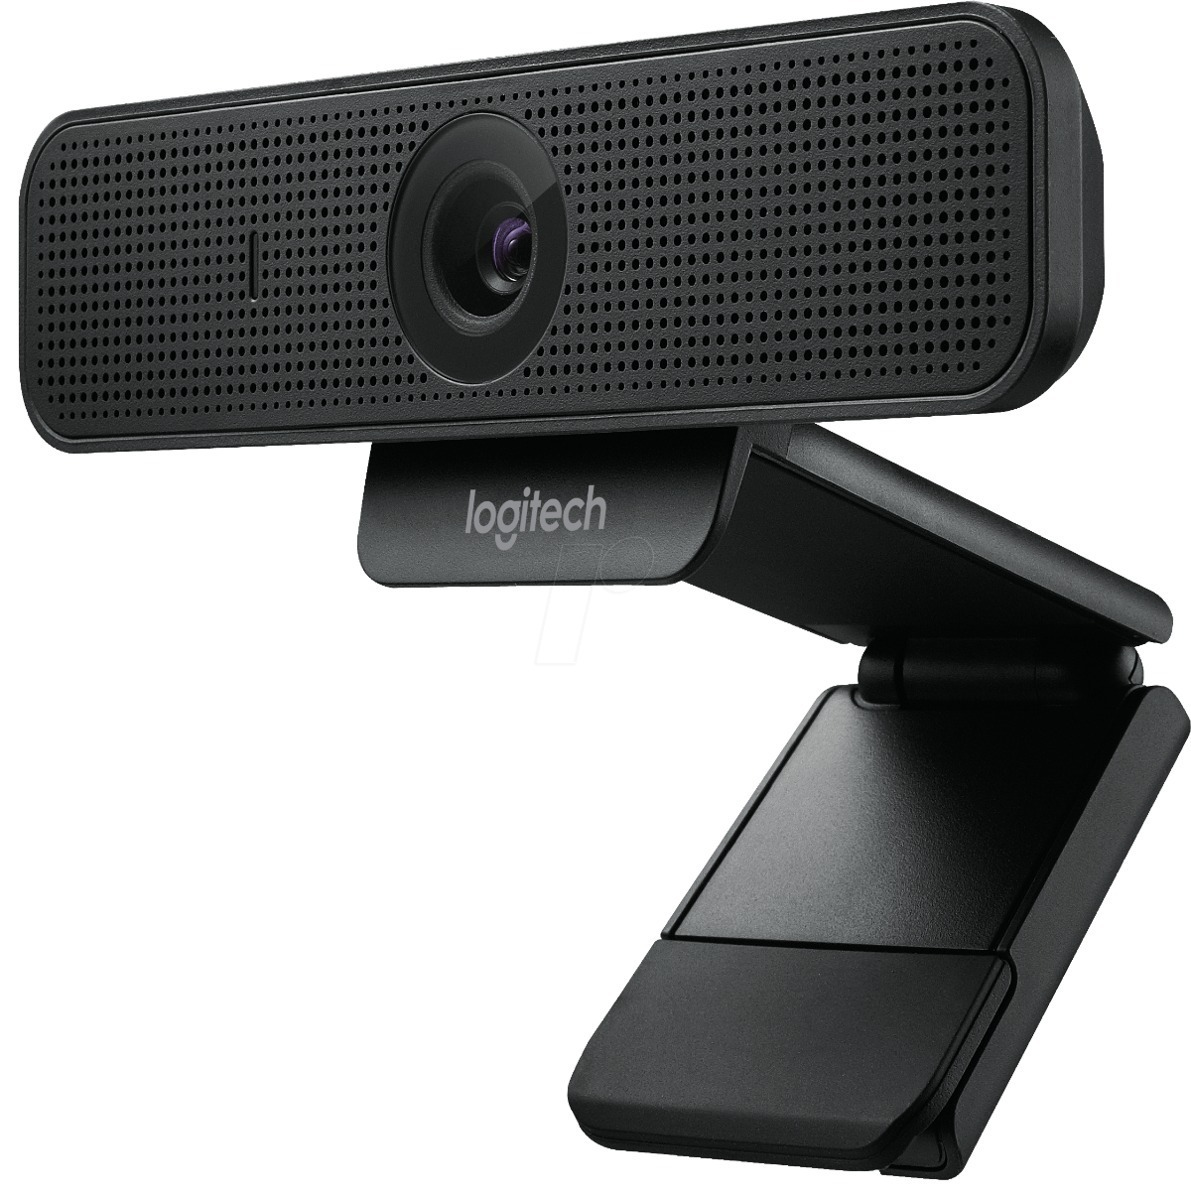 Camara Web Logitech Full Hd C925e Webcam 1080p